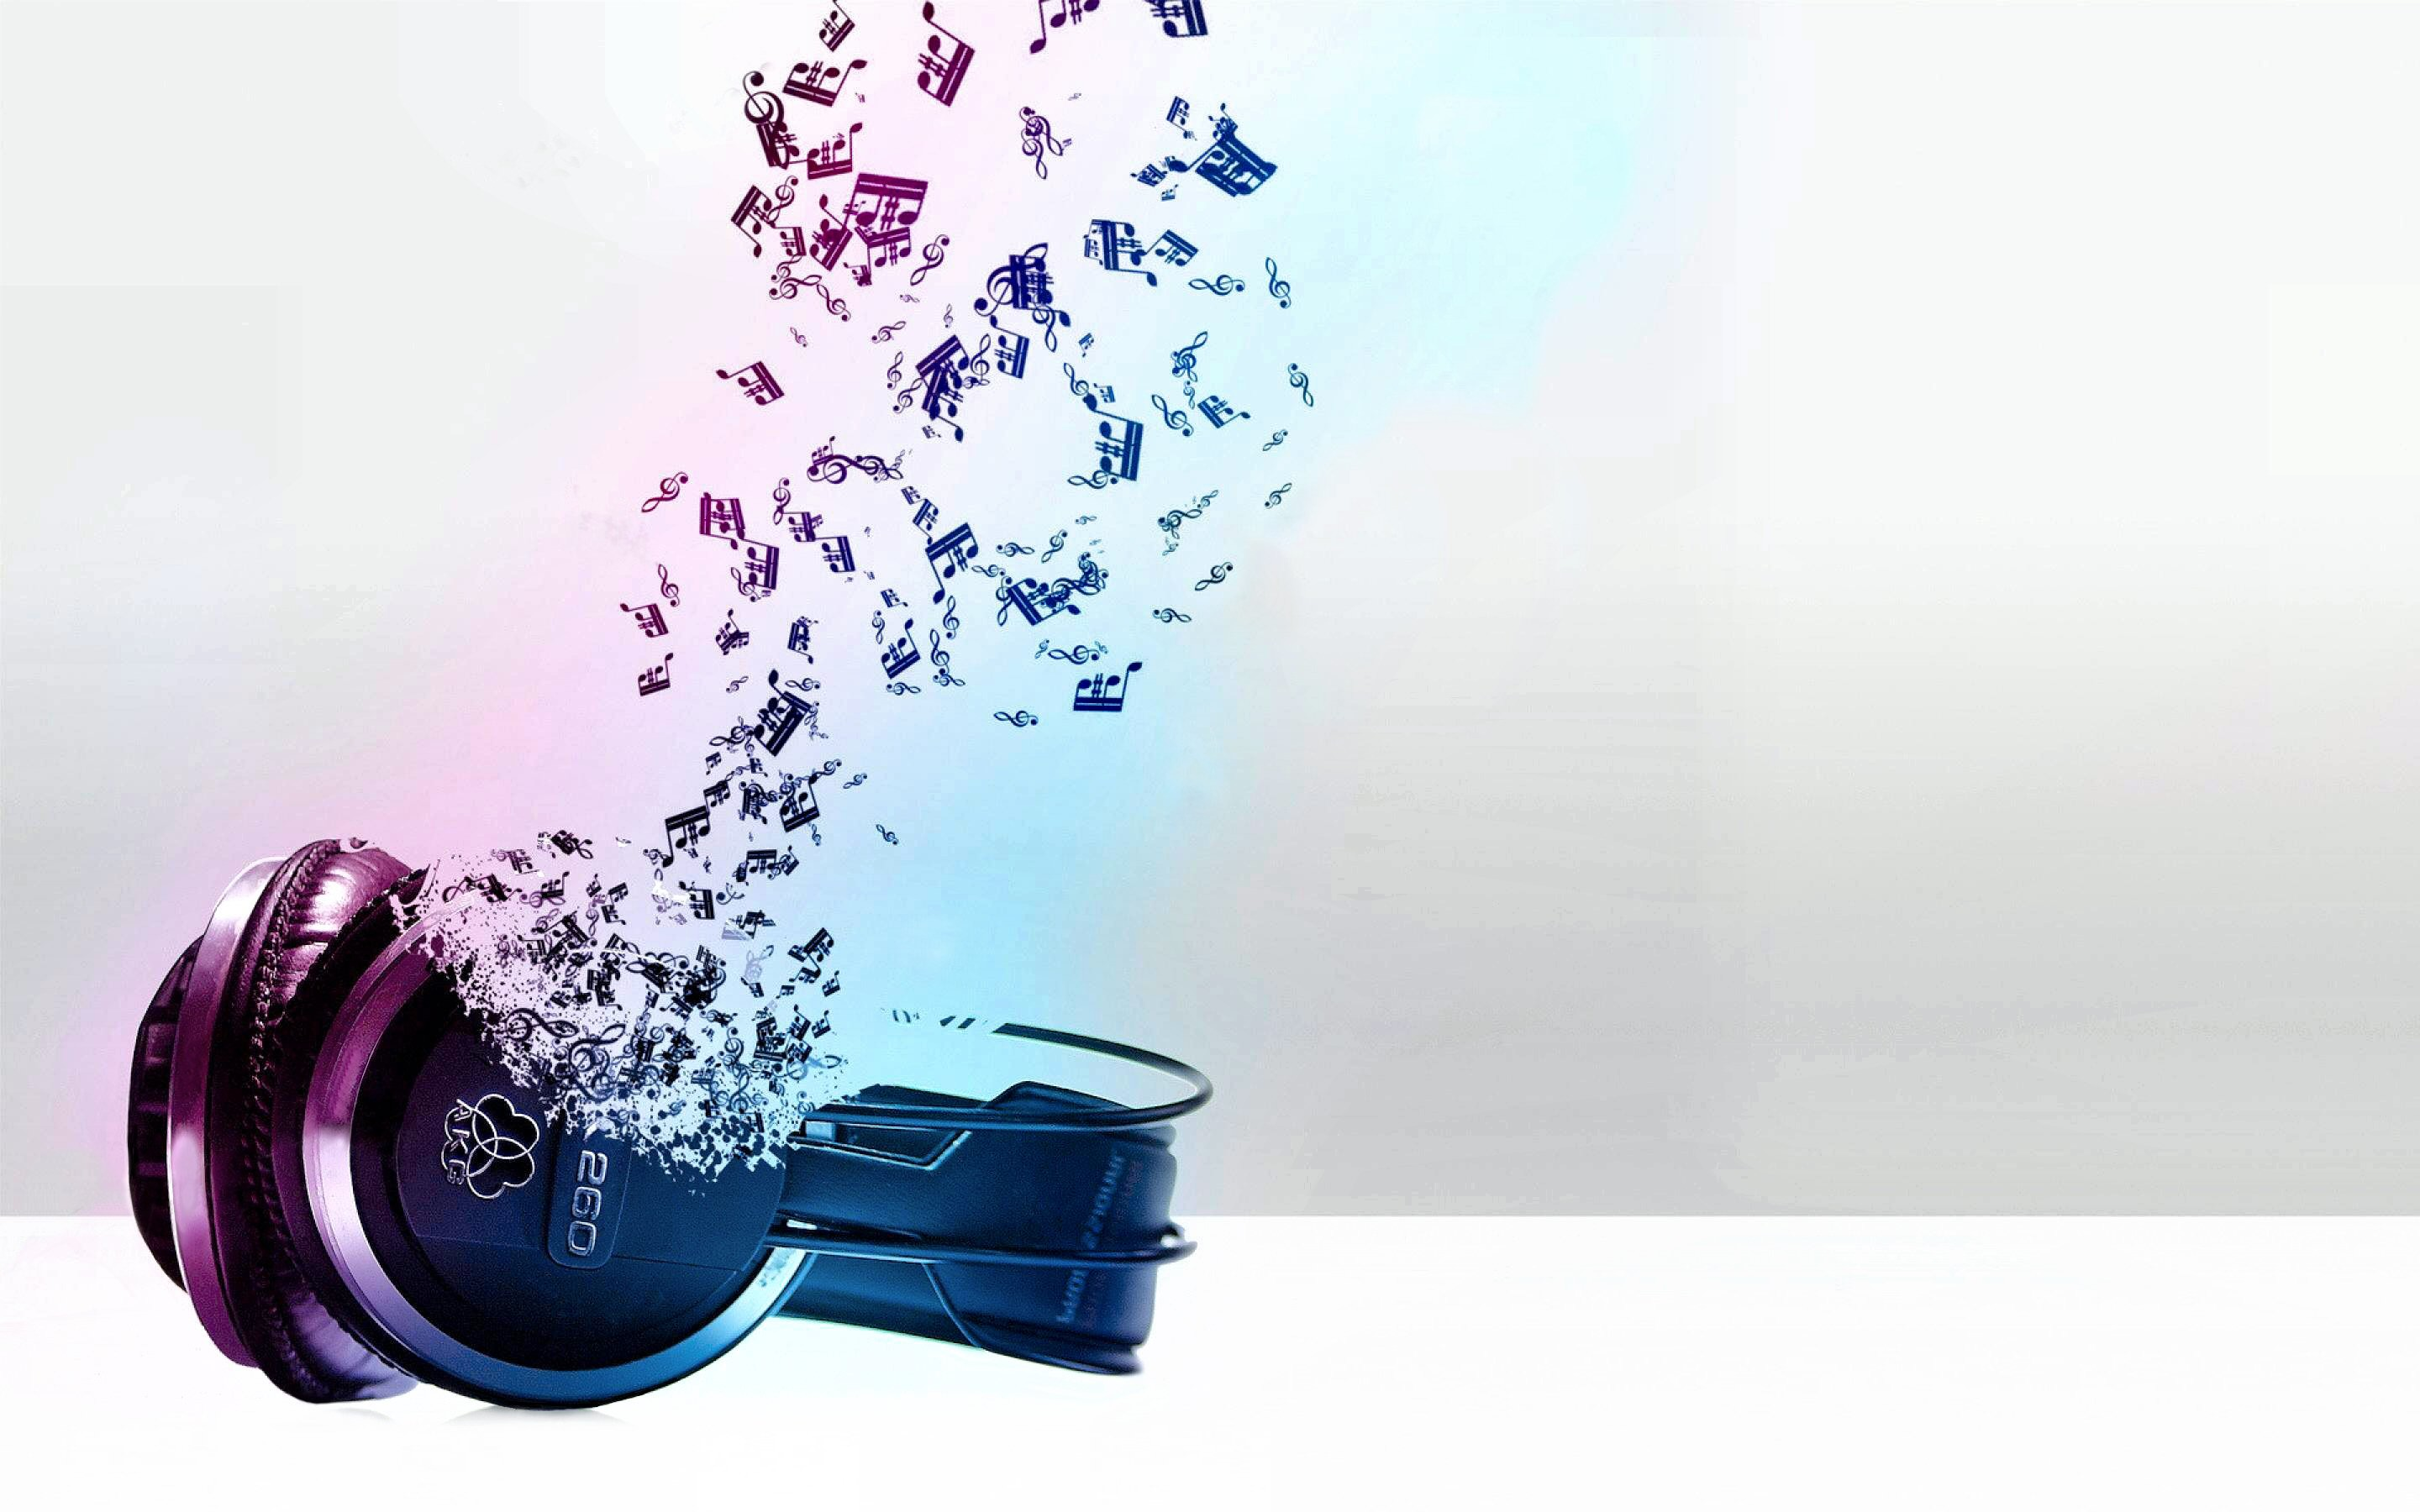 2880x1800 HD Wallpaper | Background Image ID:319933.  Music Headphones